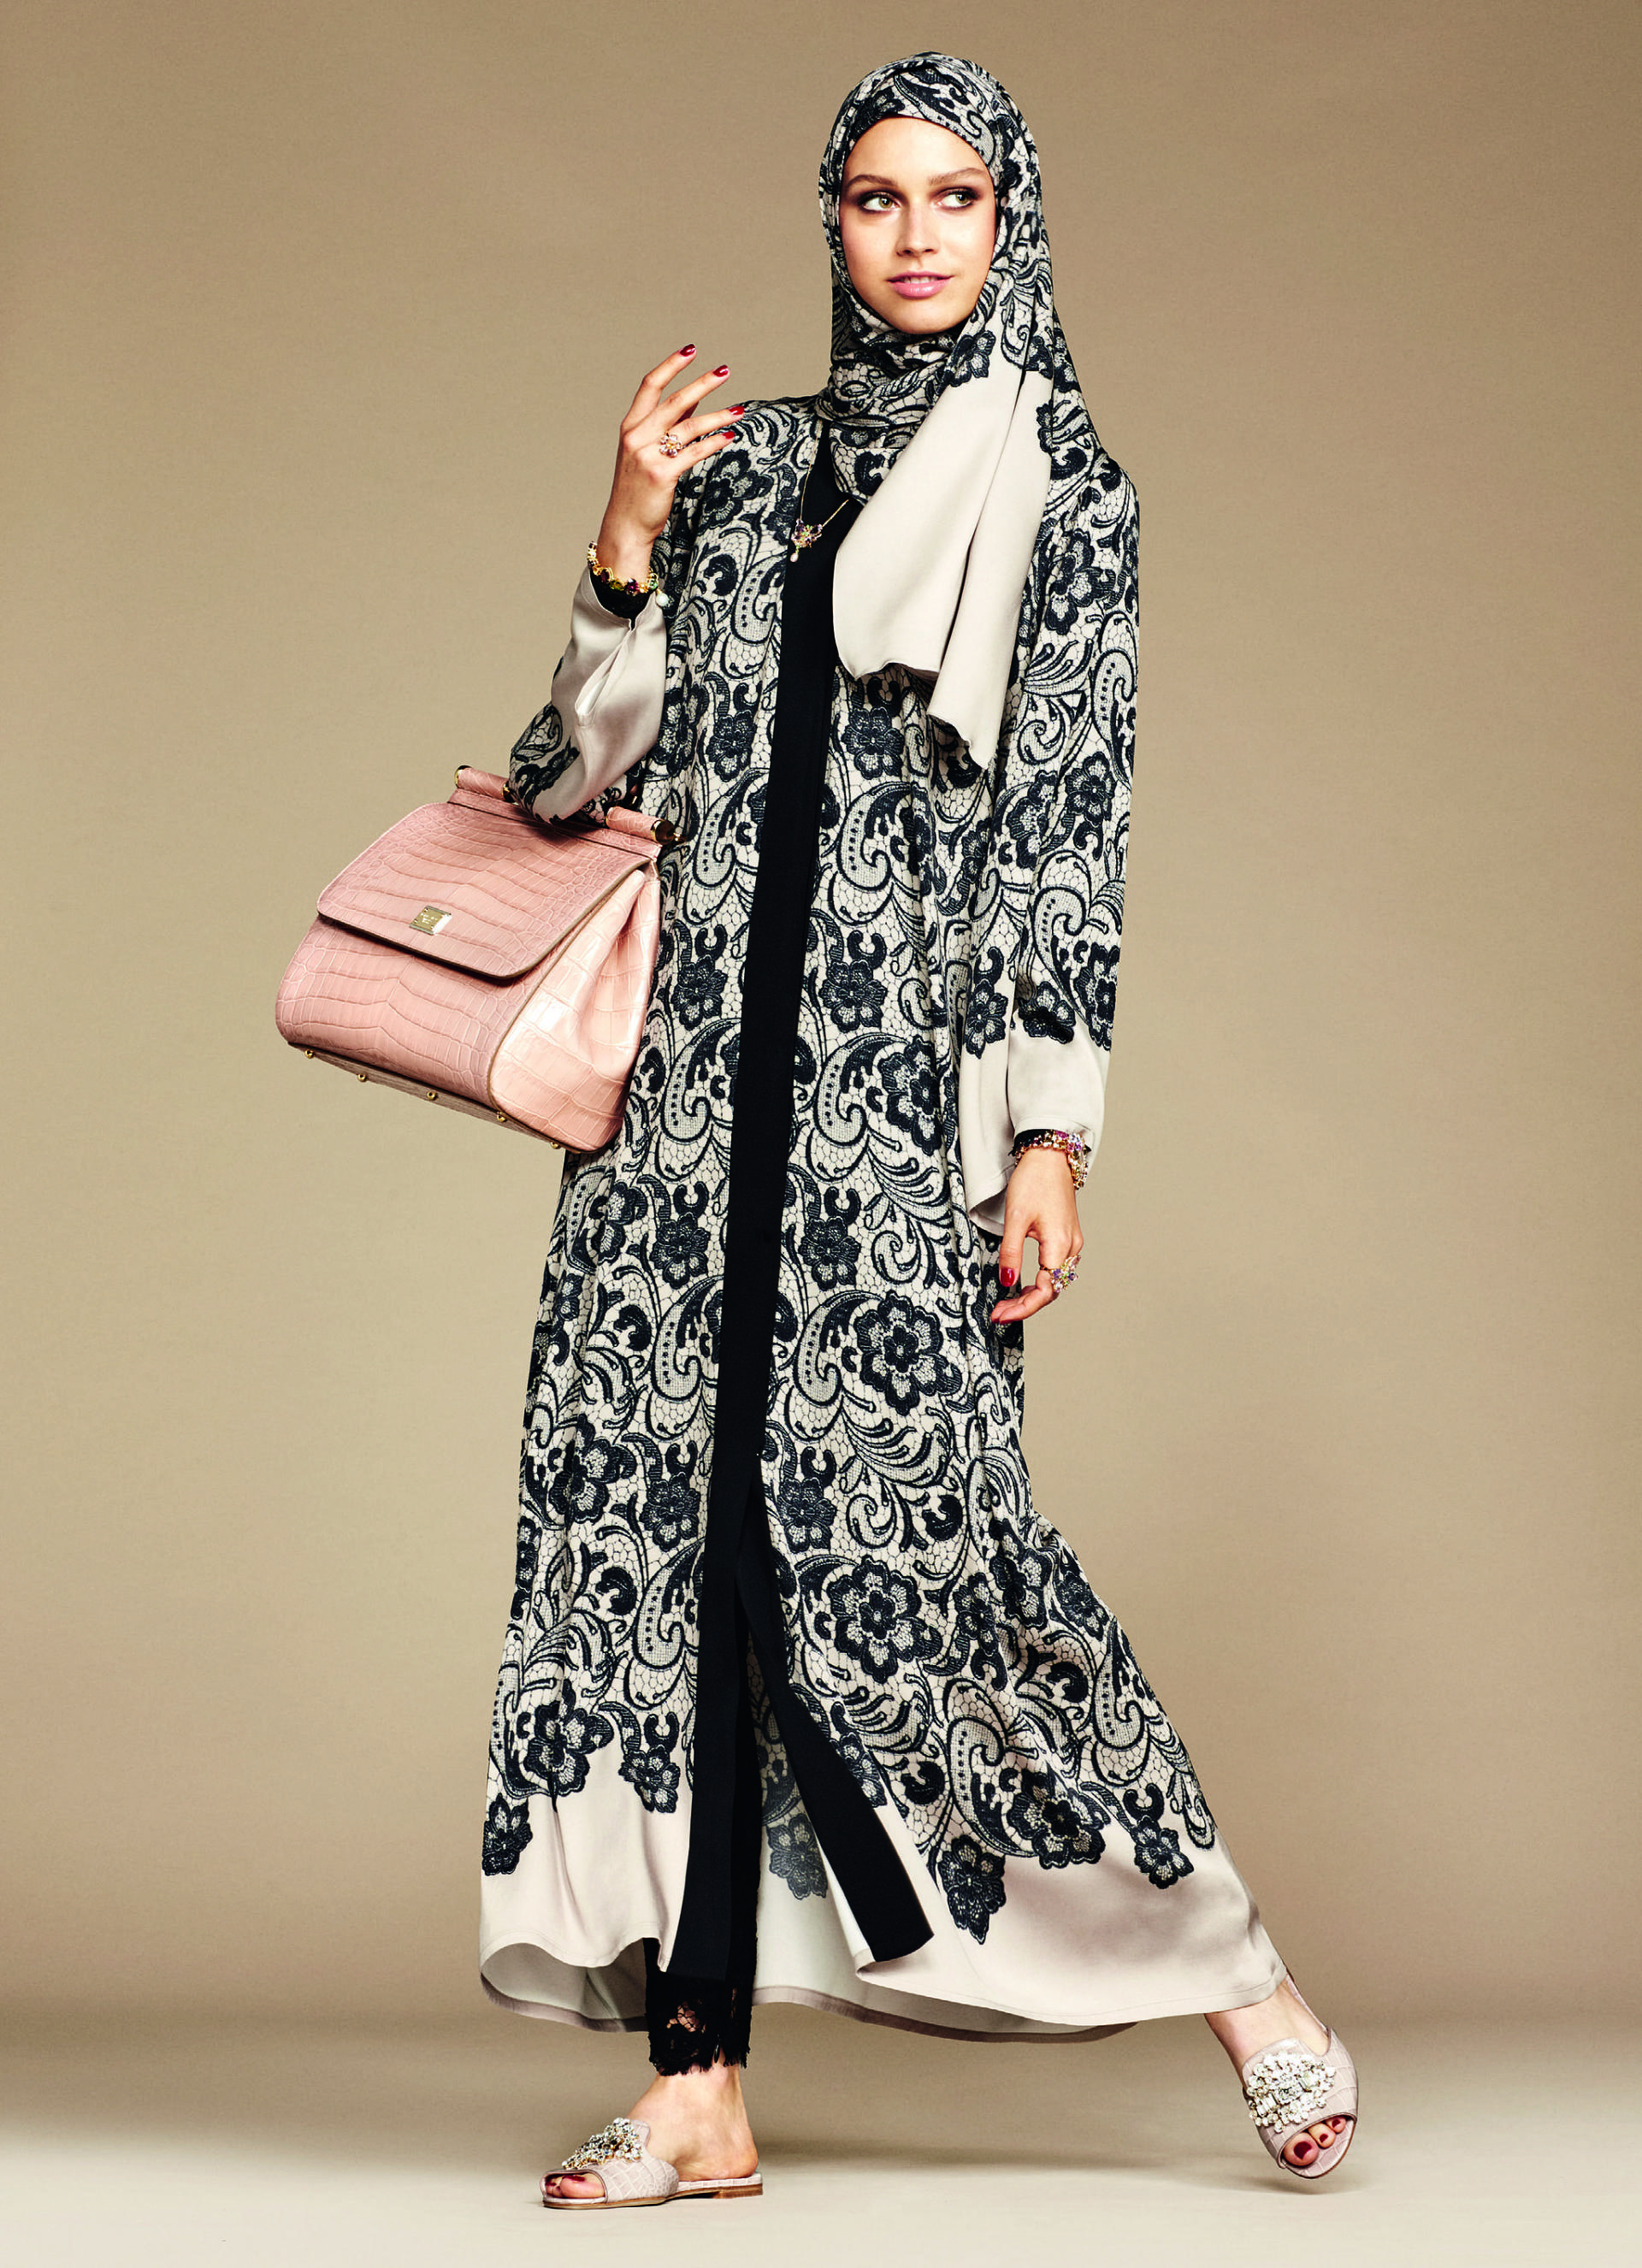 Over_Exposed_Dolce-Gabbana-Hijab-Abaya-Collection12